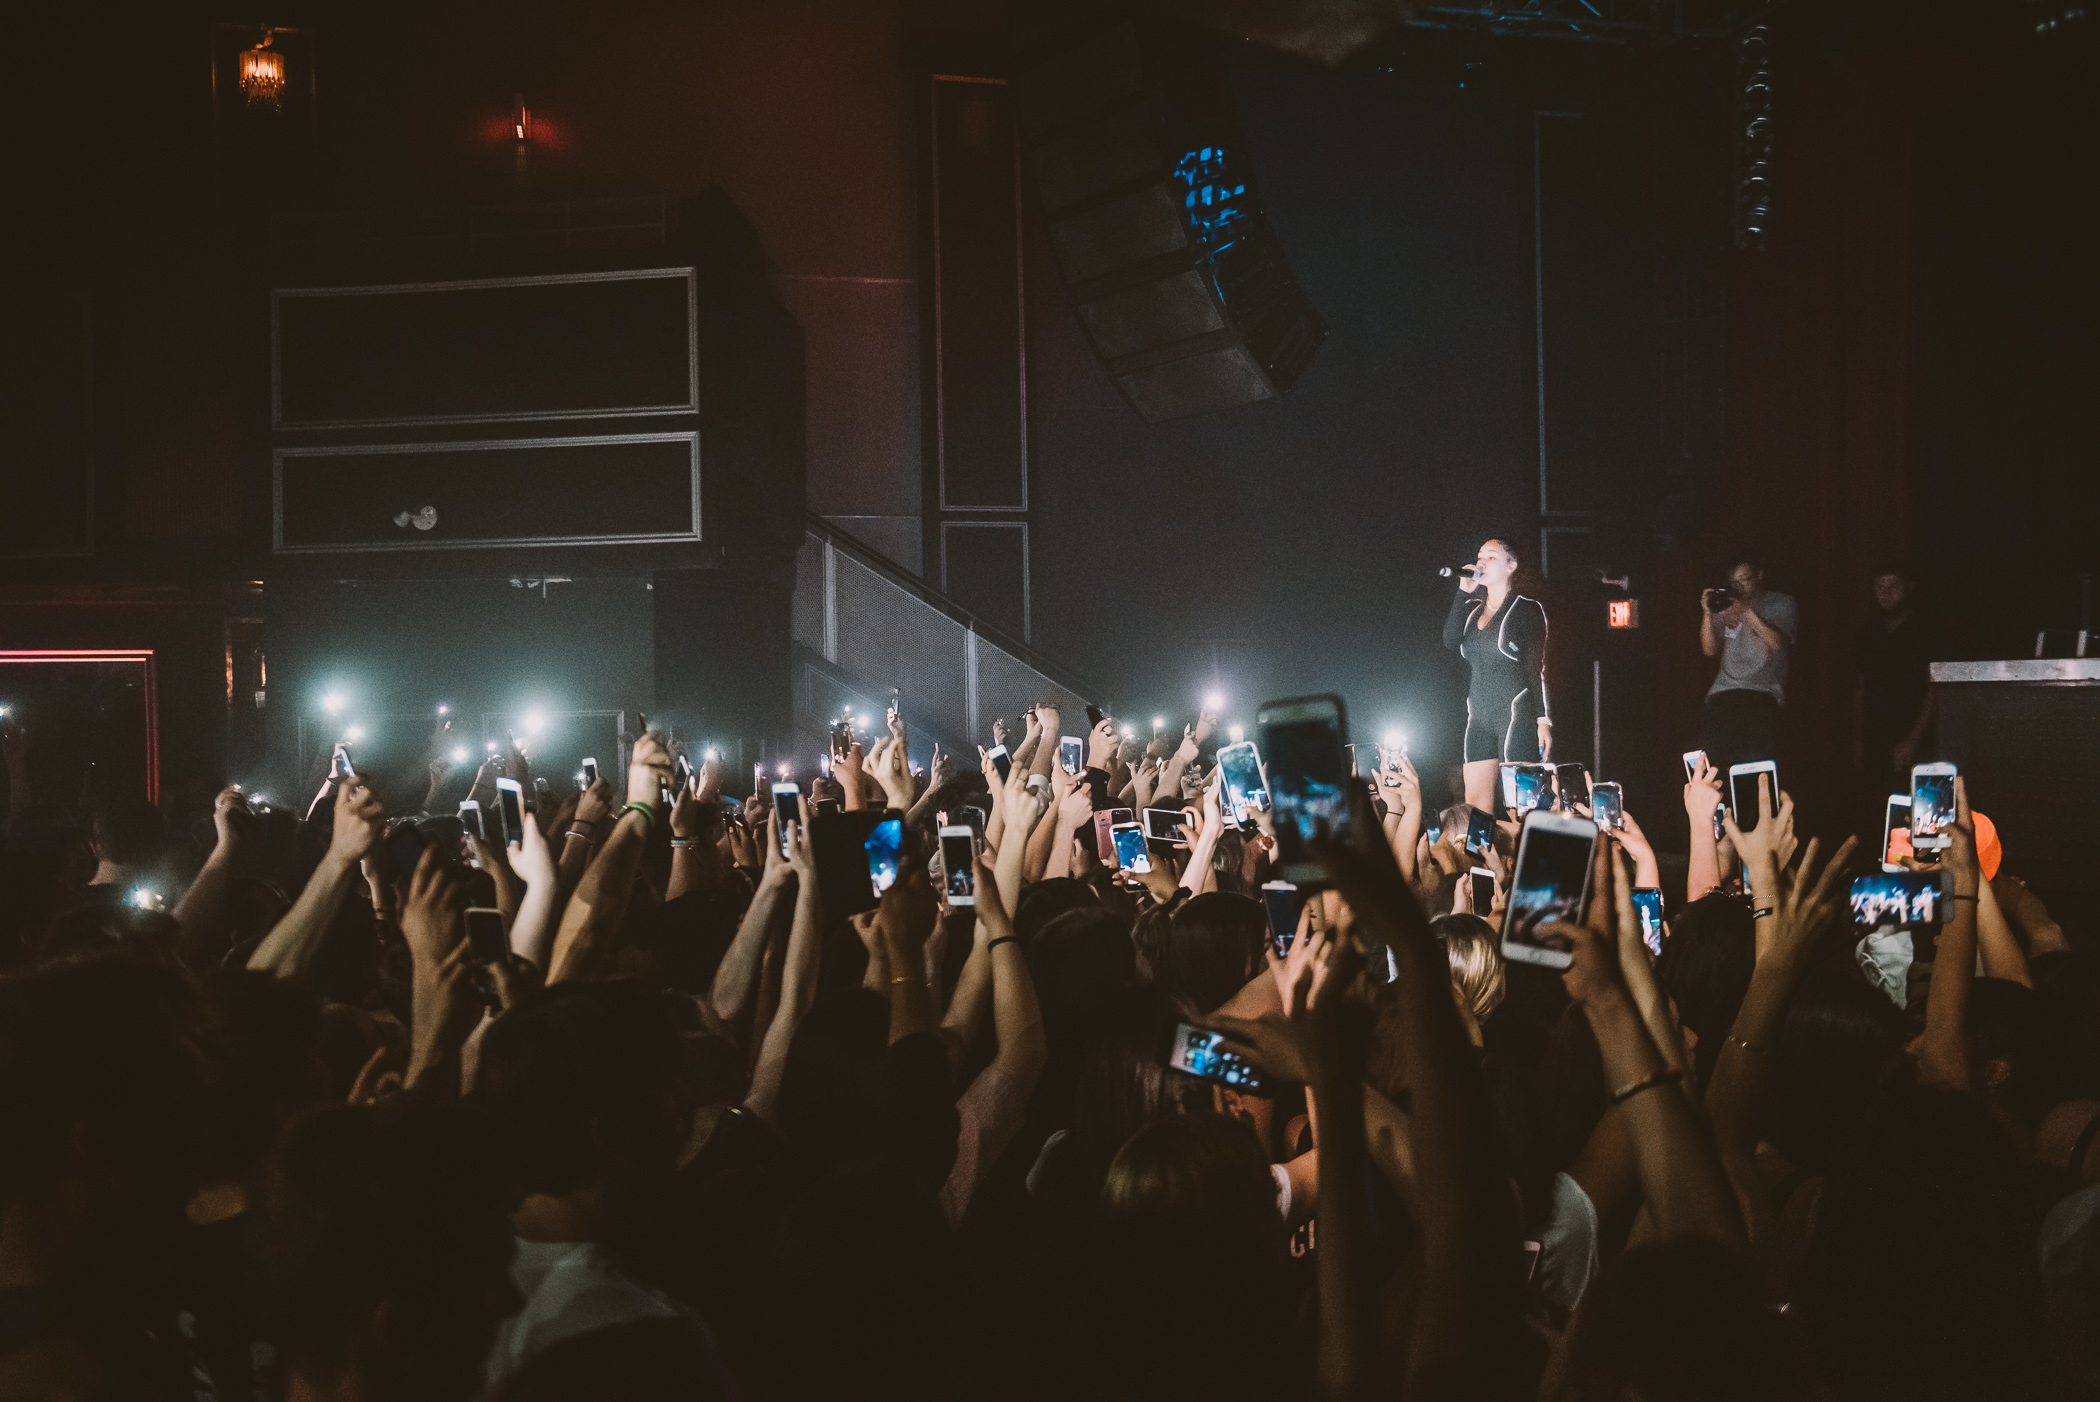 1_Bhad_Bhabie-VENUE-Timothy_Nguyen-20190510 (28 of 45).JPG